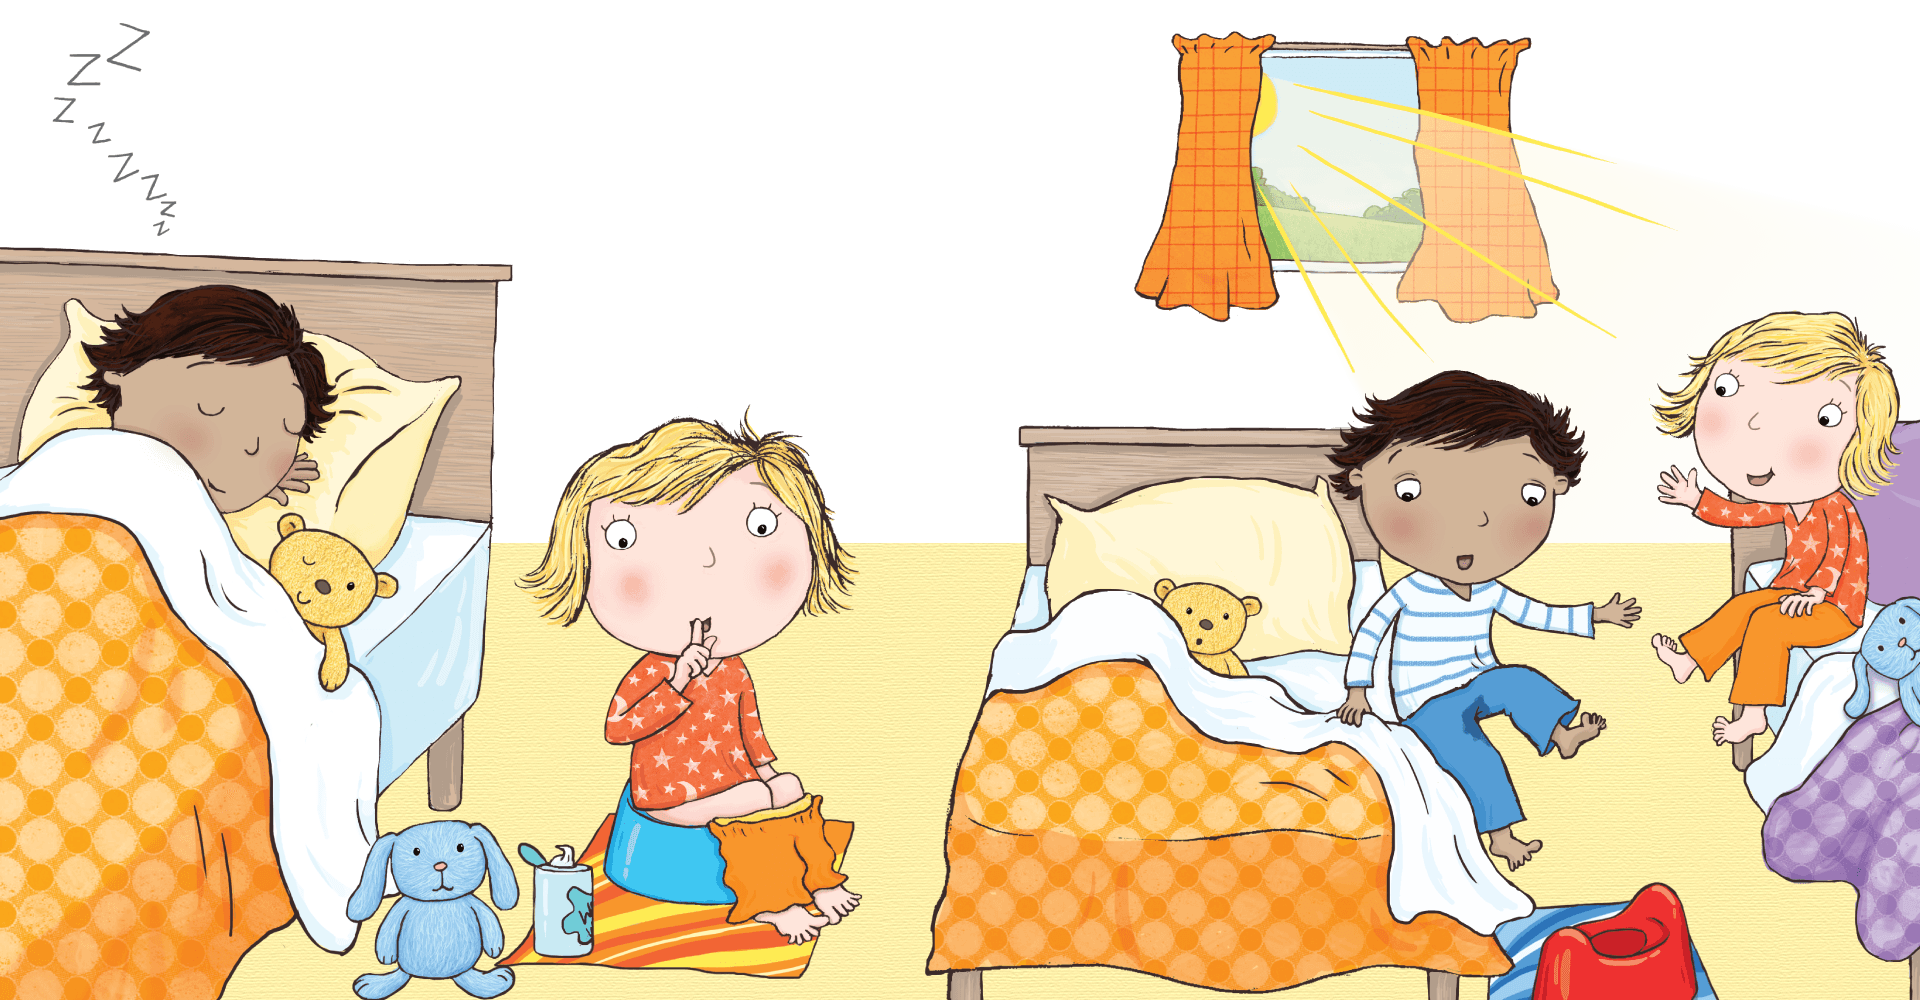 svg royalty free library Waking clipart nights. Night time potty training.